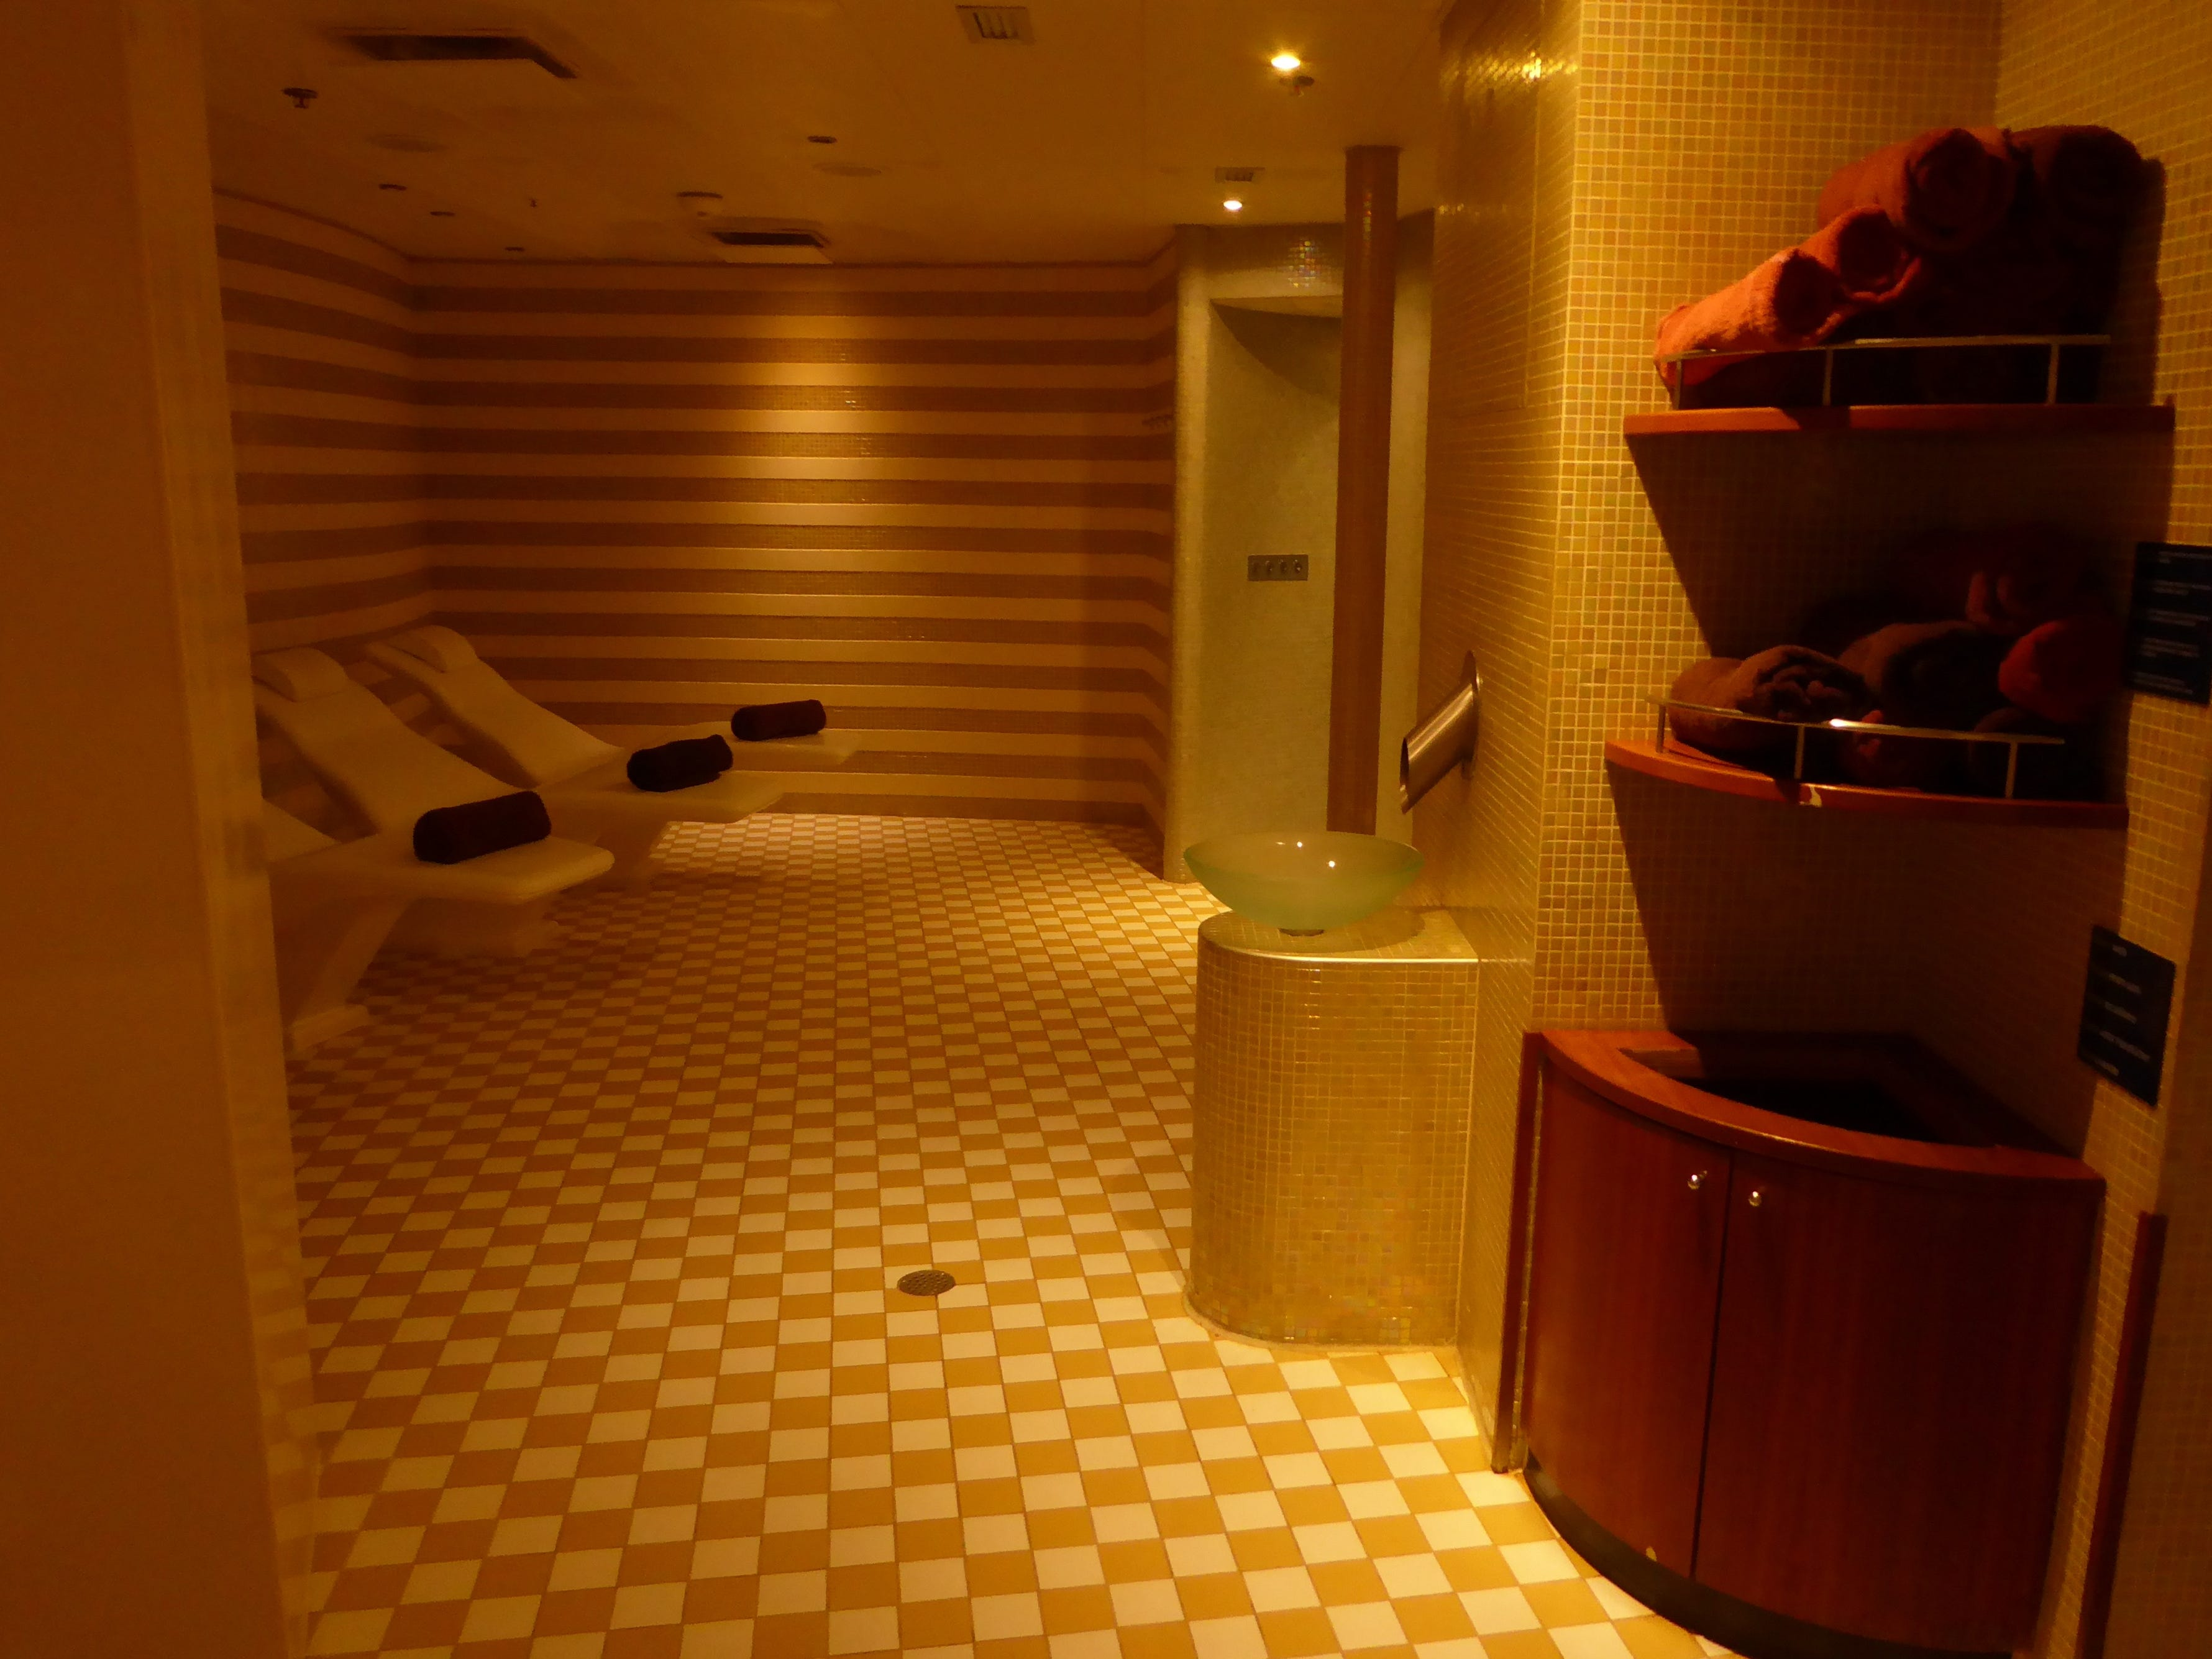 The Indulgence Spa has a thermal suite that is available to guests for a fee.